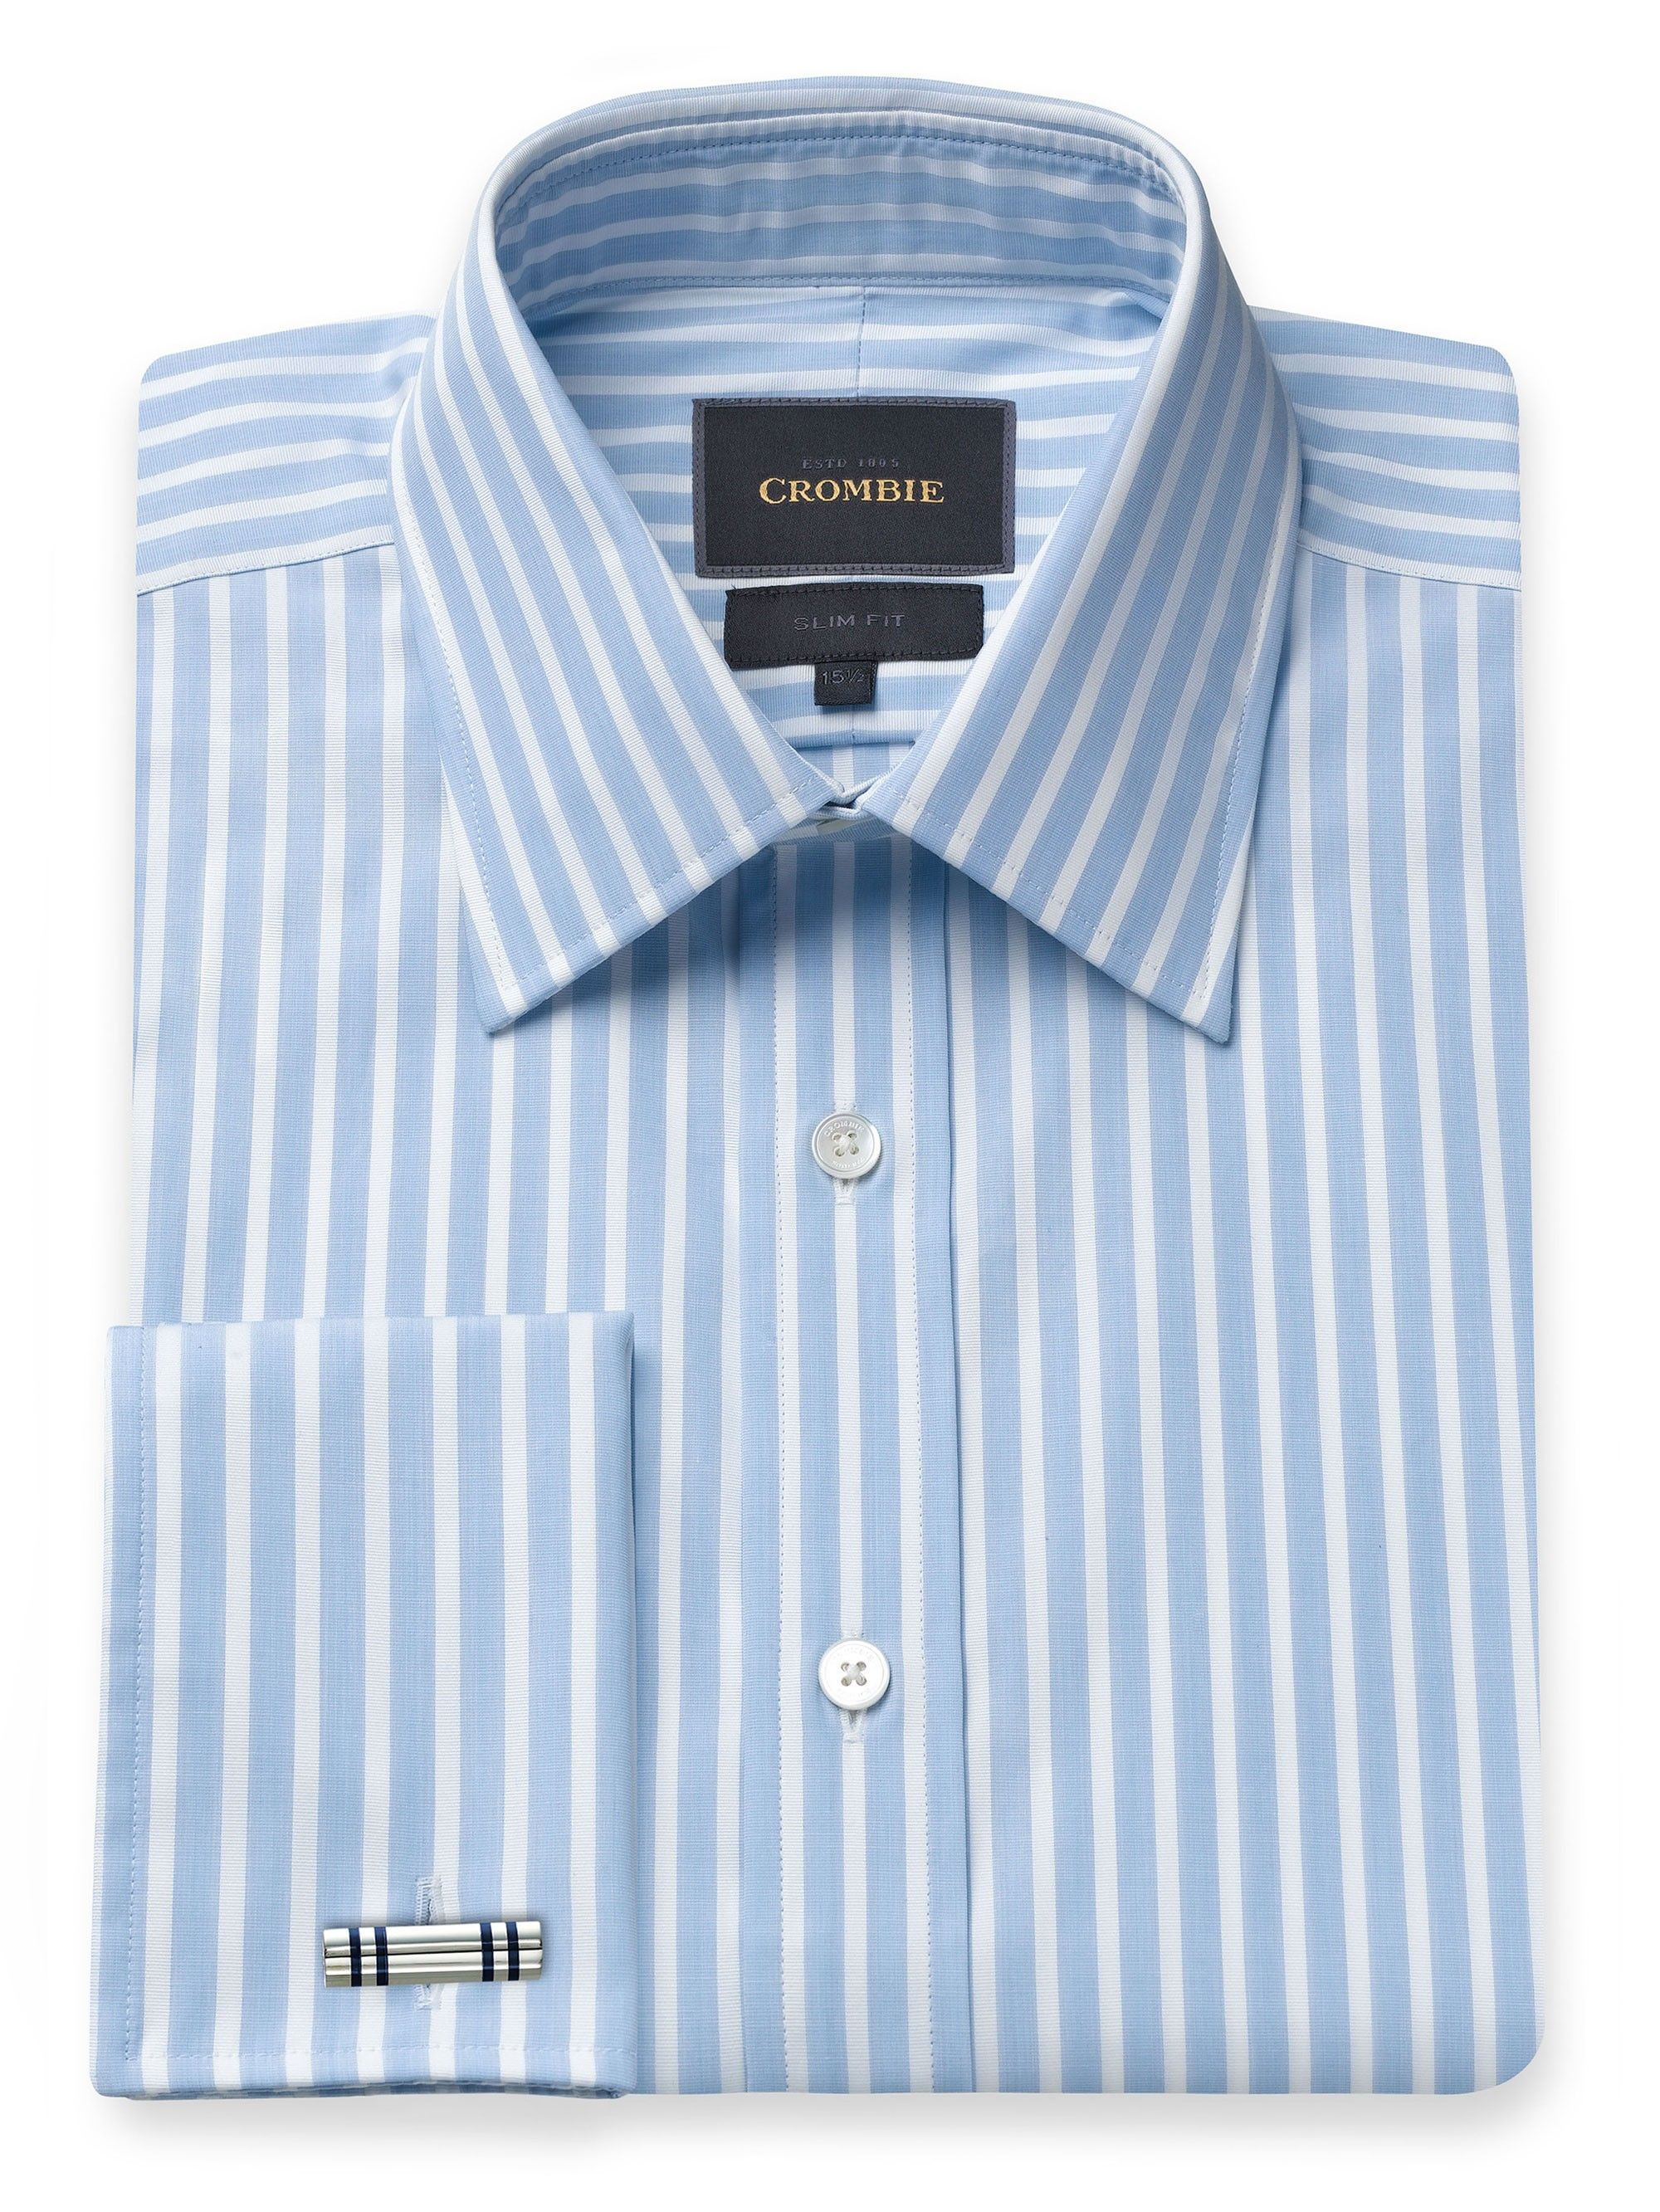 Pale Blue And White Stripe Shirt, Slim Fit - http://www.crombie.co.uk/mens/shirts-formal.html